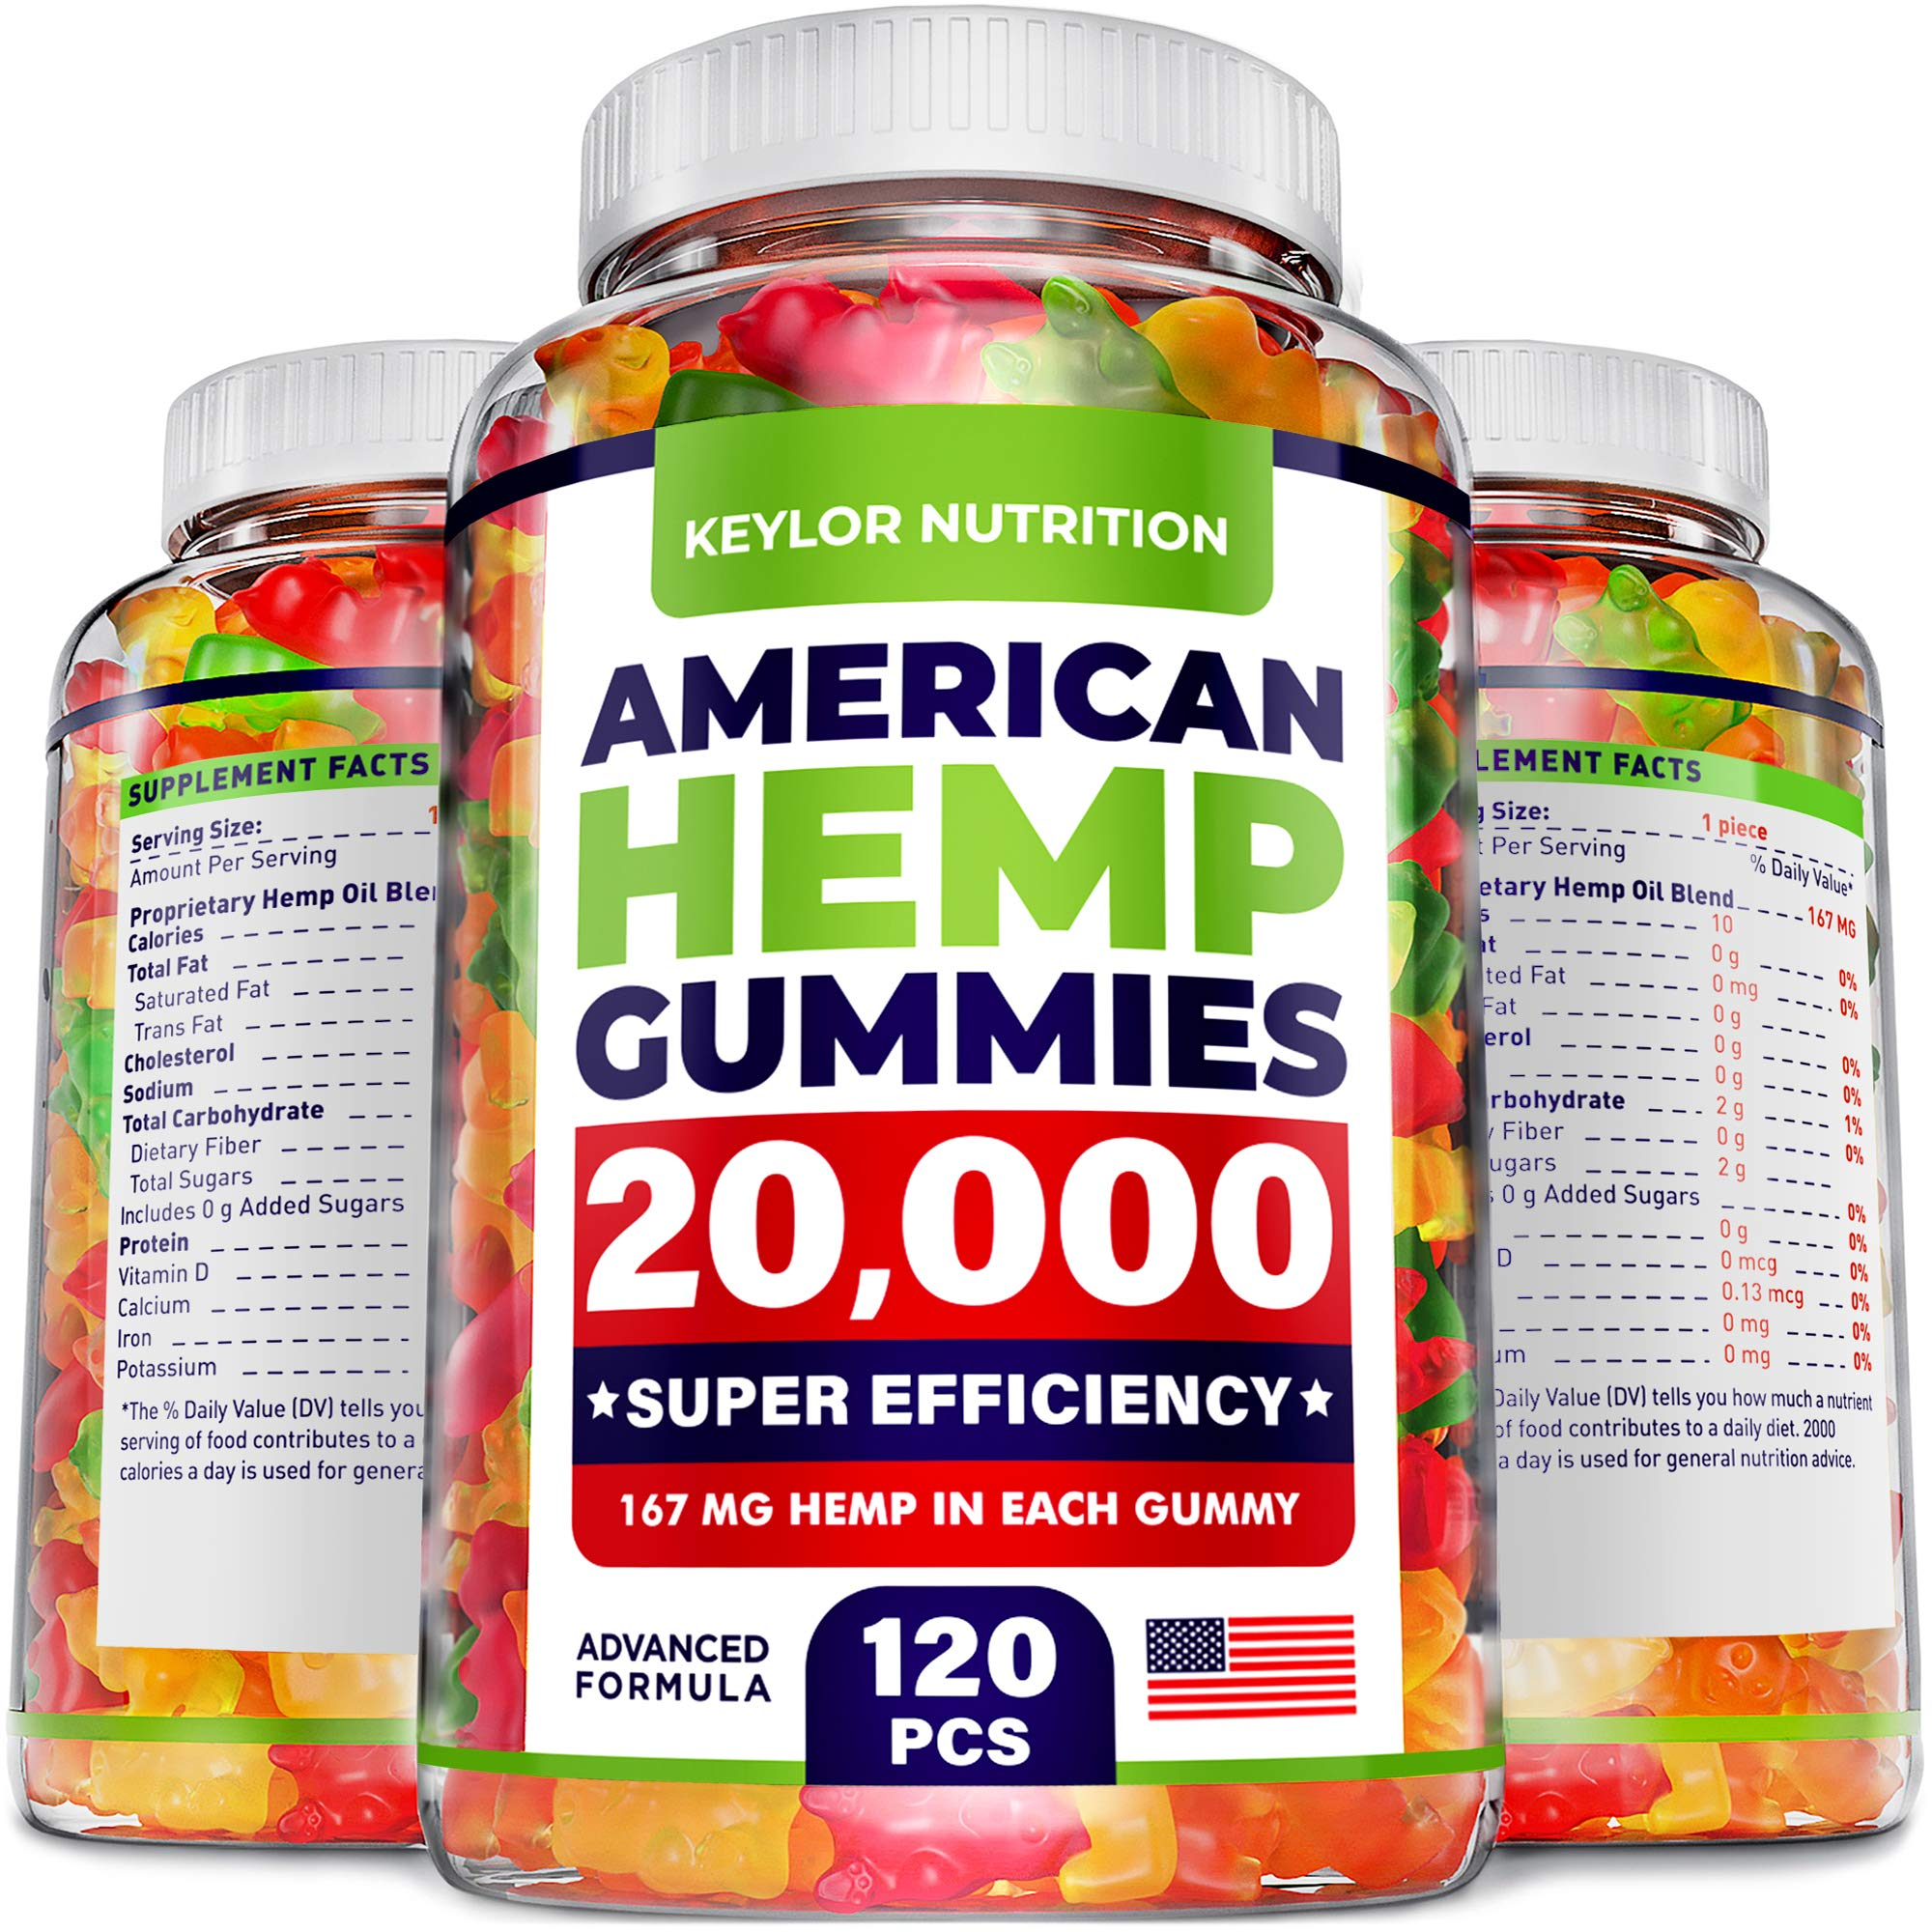 Keylor Nutrition Hemp Oil Gummies - 20,000 MG - Made in USA - Relief for Stress, Inflammation, Sleep, Anxiety, Depression - All-Natural Ingredients - Hemp Gummies with Omega 3-6-9 CO2 Extraction by Keylor Nutrition store